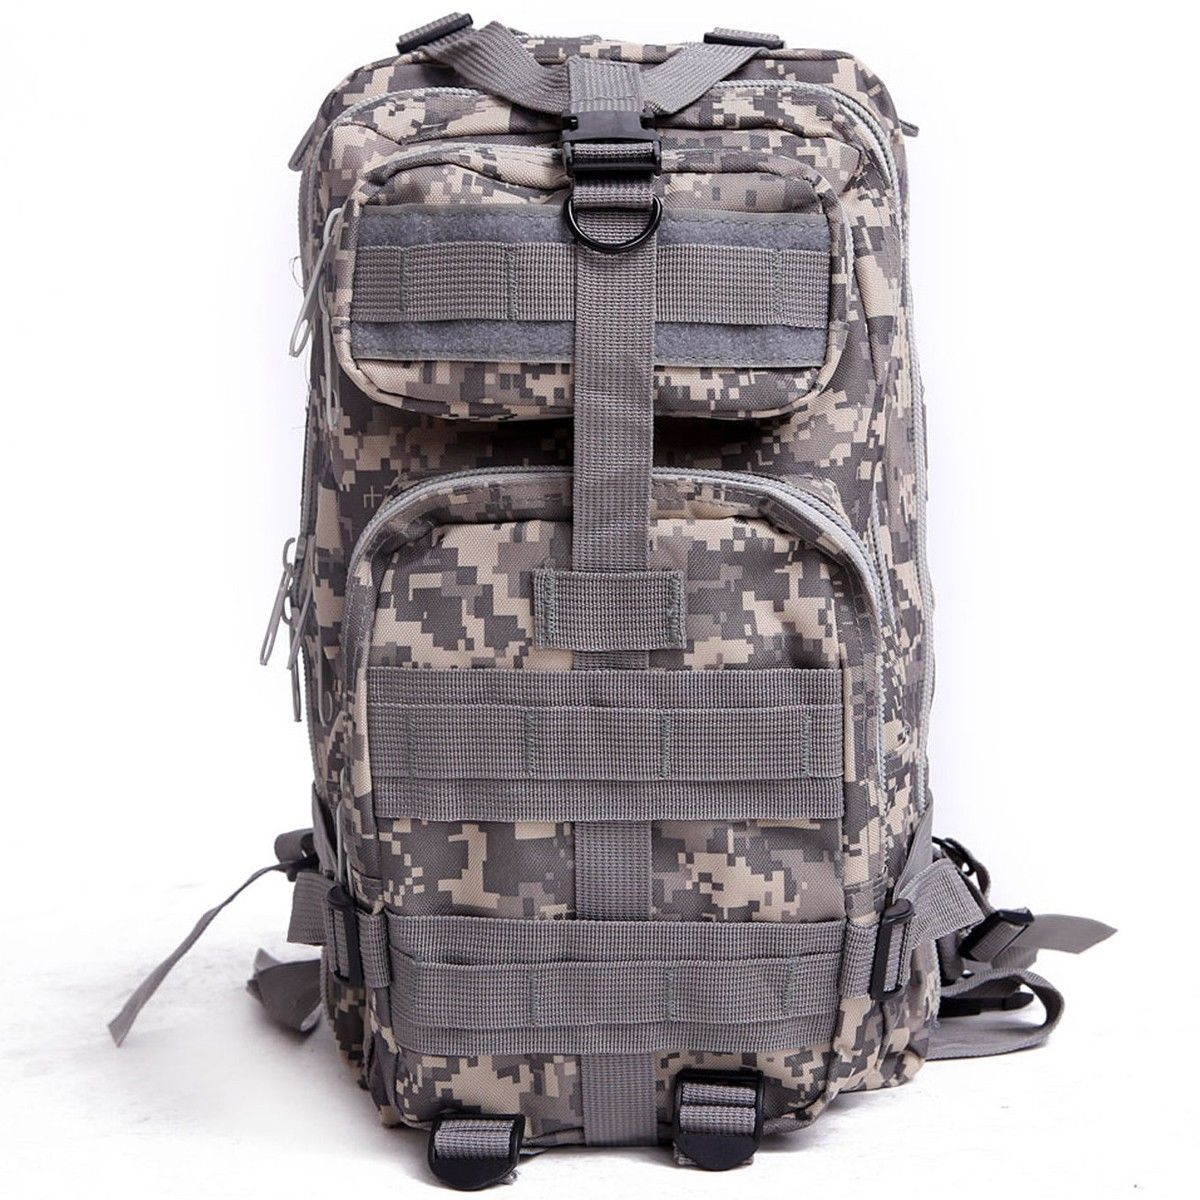 Outdoor Tactical backpack MOLLE Rucksack Bag For Sports Camping Hiking Digital Camo Color